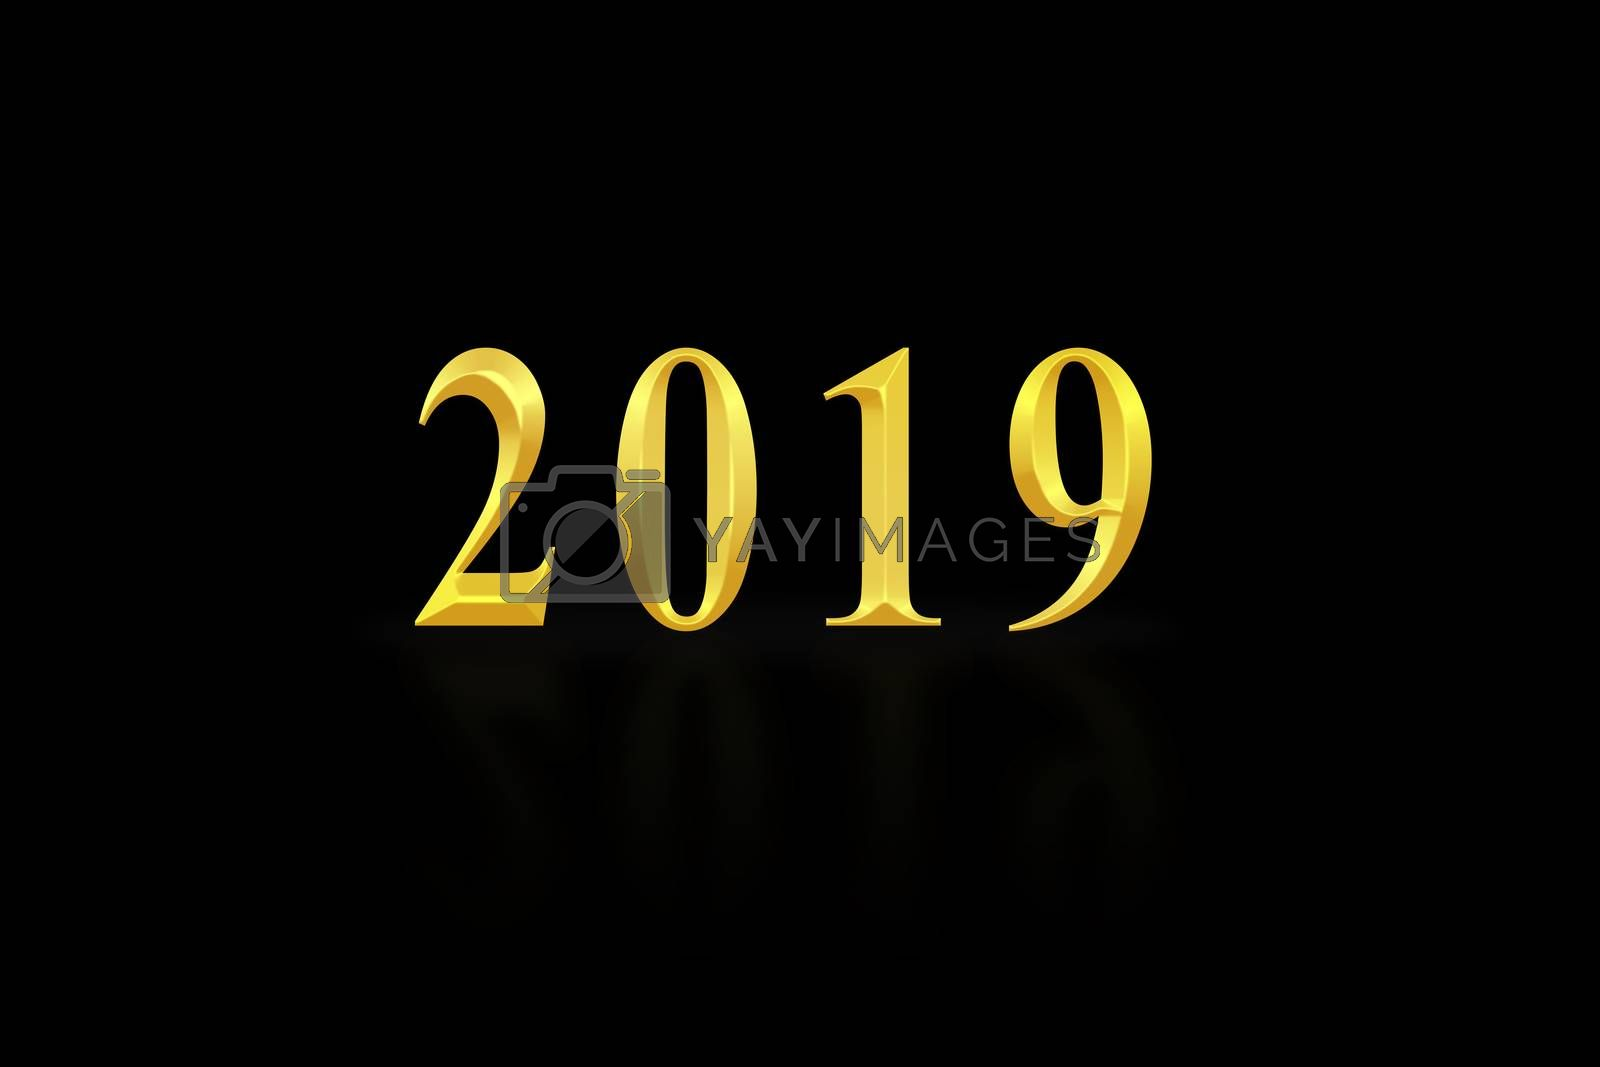 The number 2019 in gold letters, black background